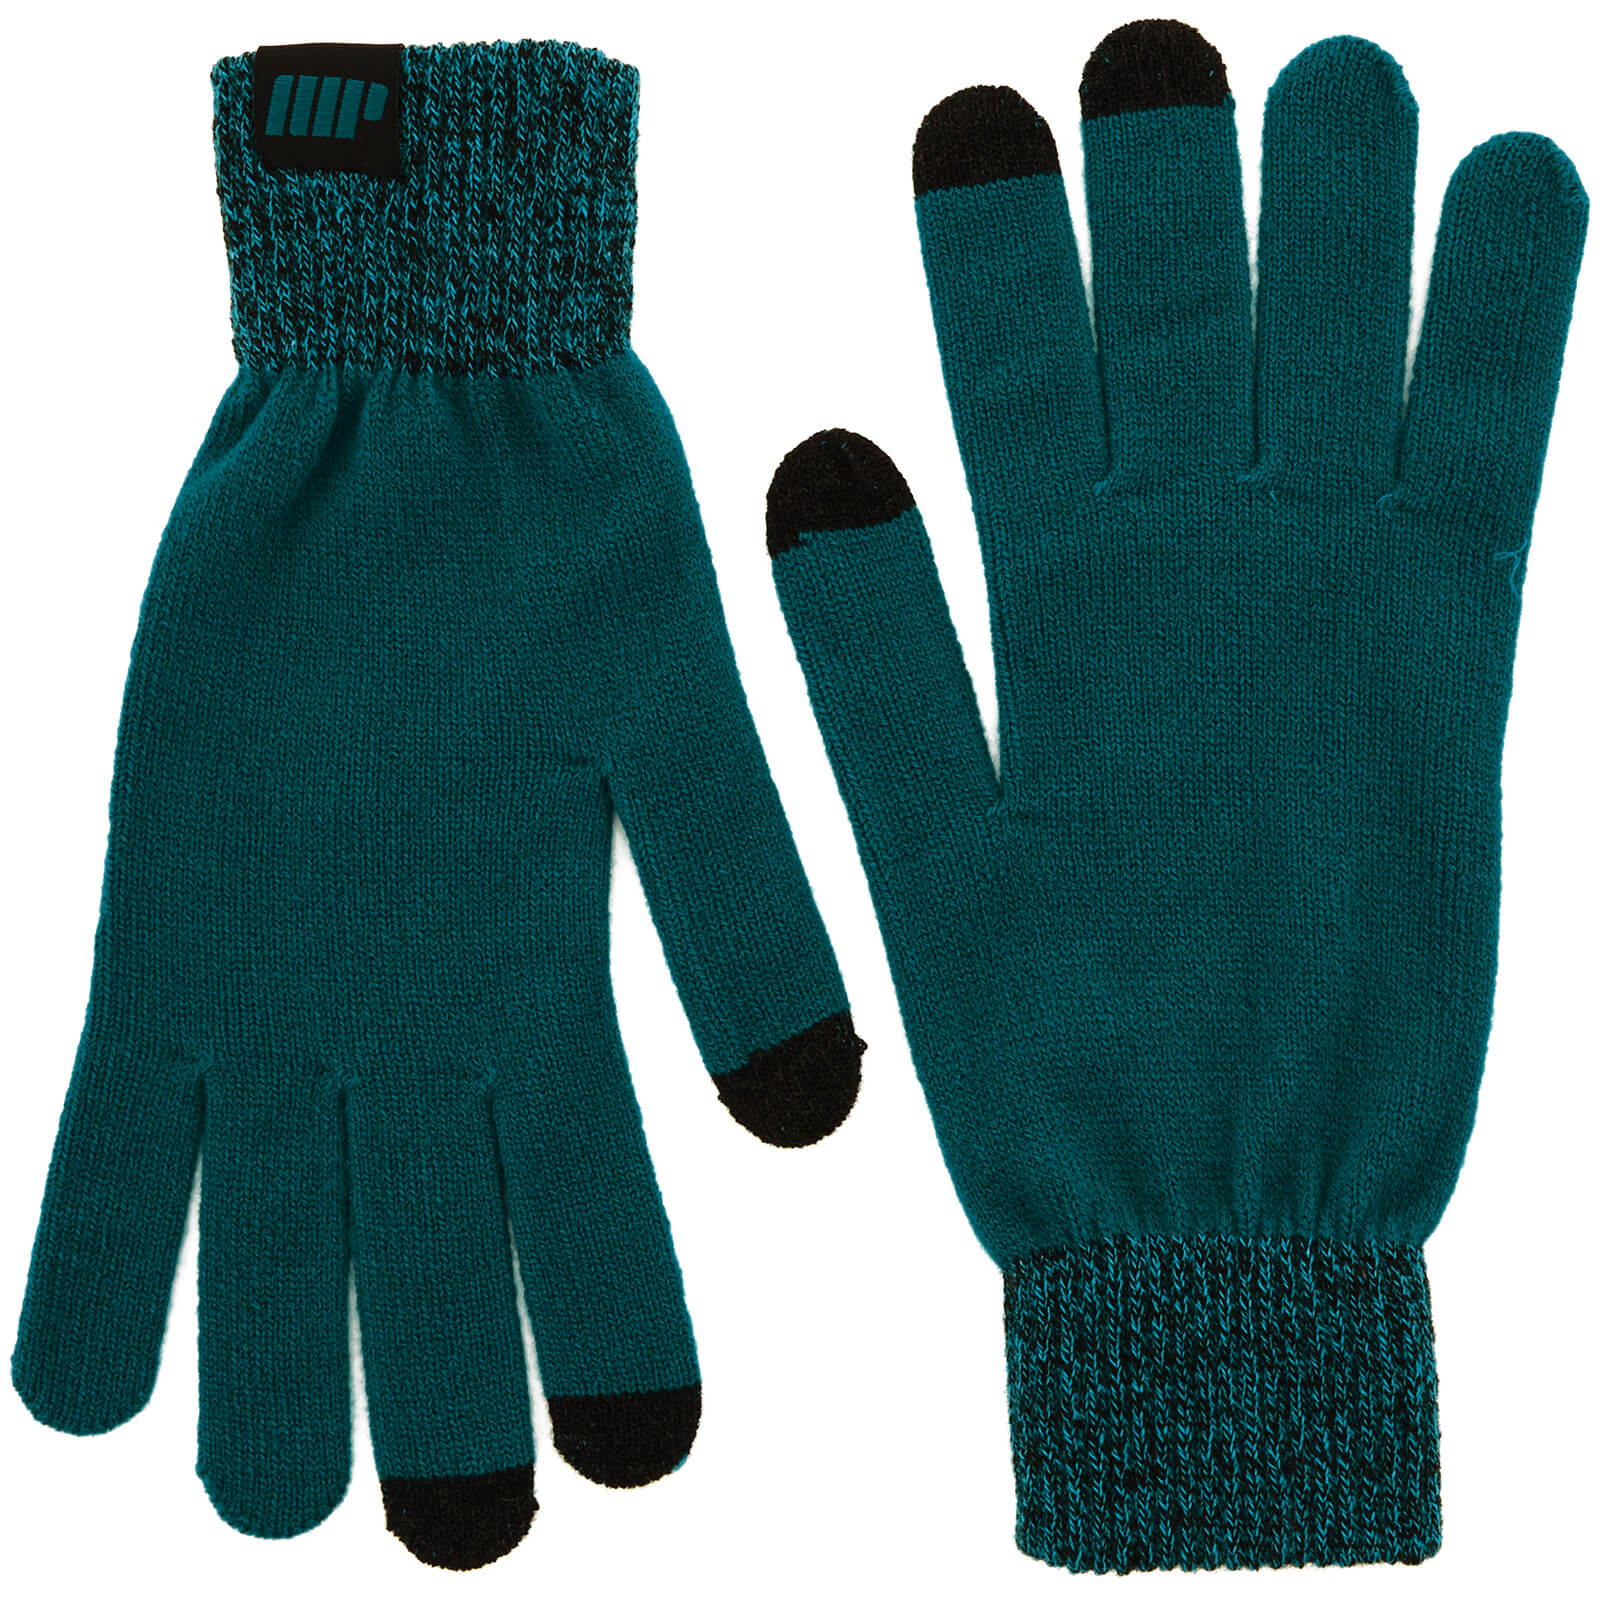 Myprotein Knitted Gloves - Teal - S/M